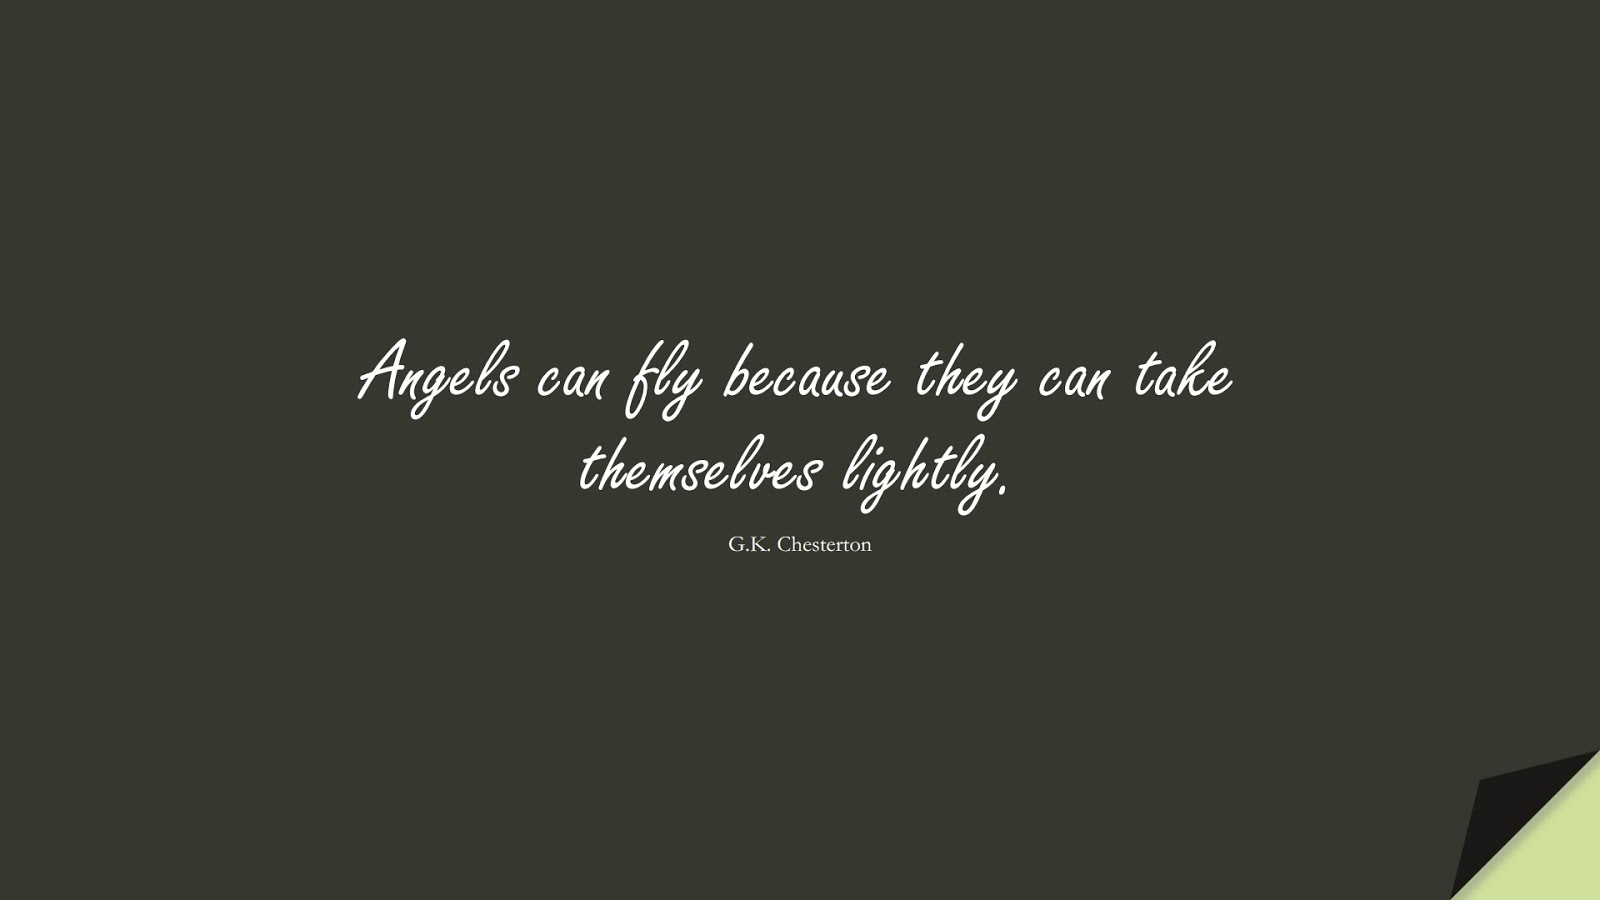 Angels can fly because they can take themselves lightly. (G.K. Chesterton);  #BestQuotes